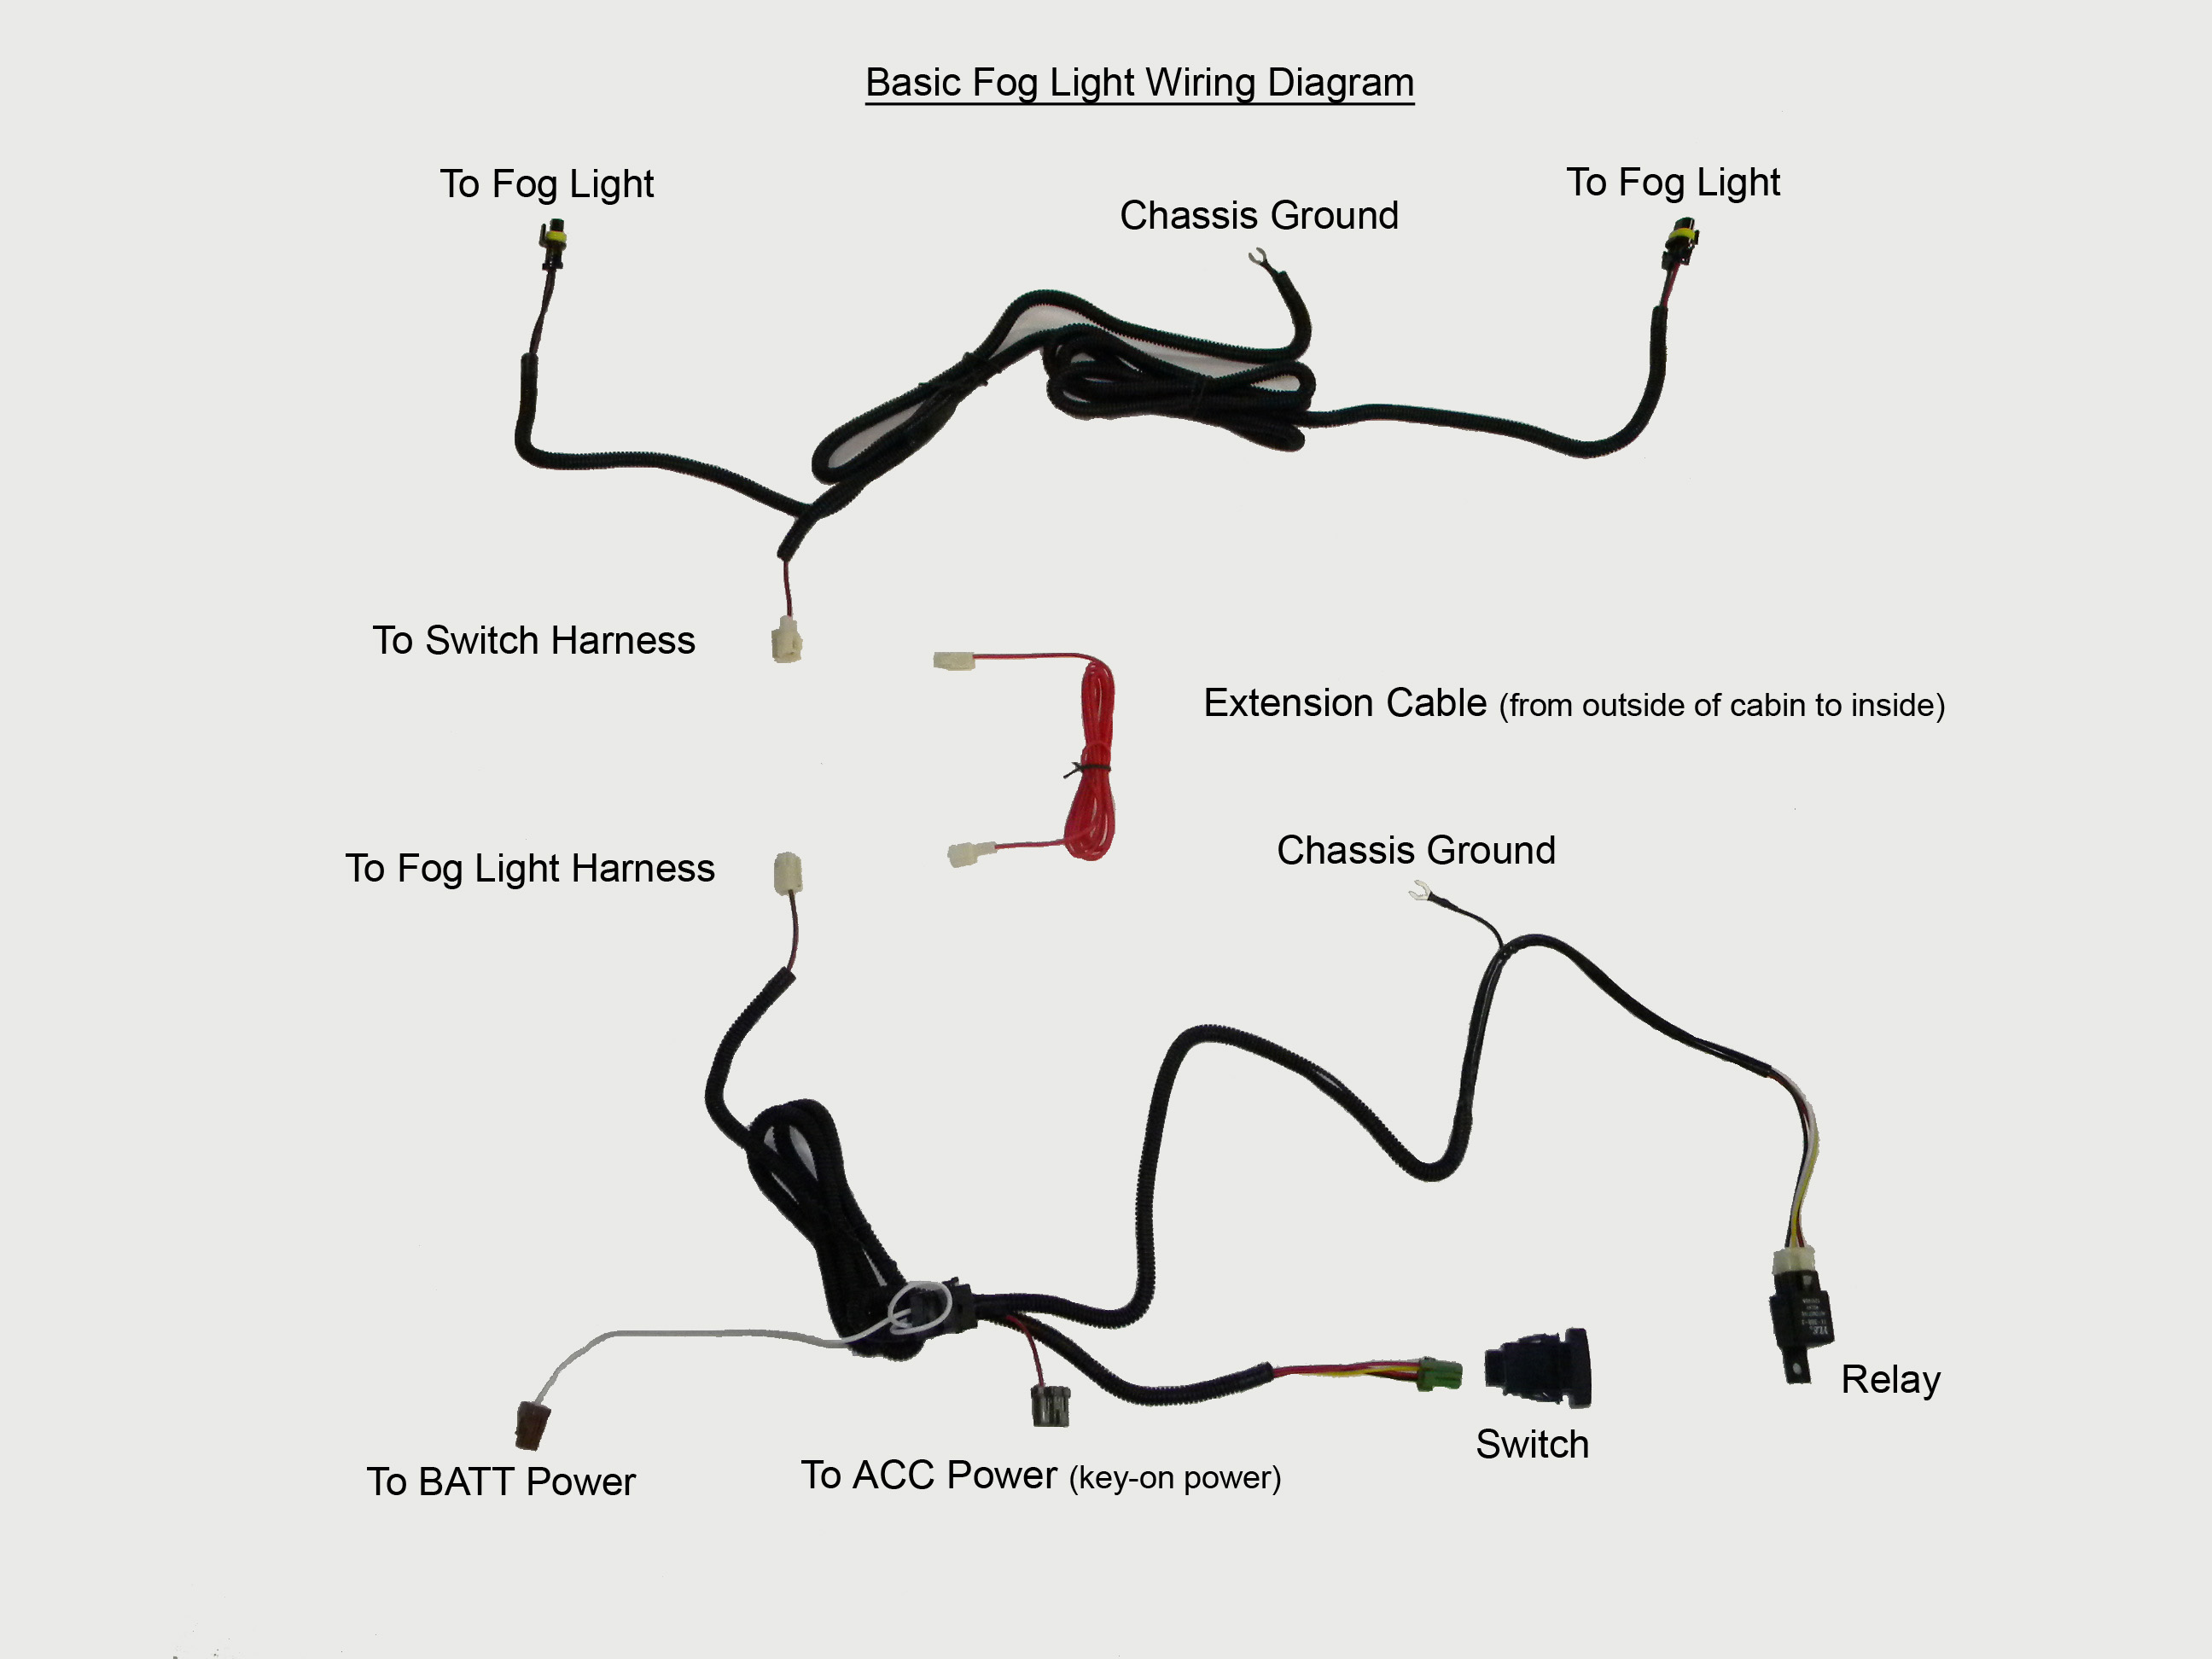 Help With Defective Oem Style Fog Light Harness Please